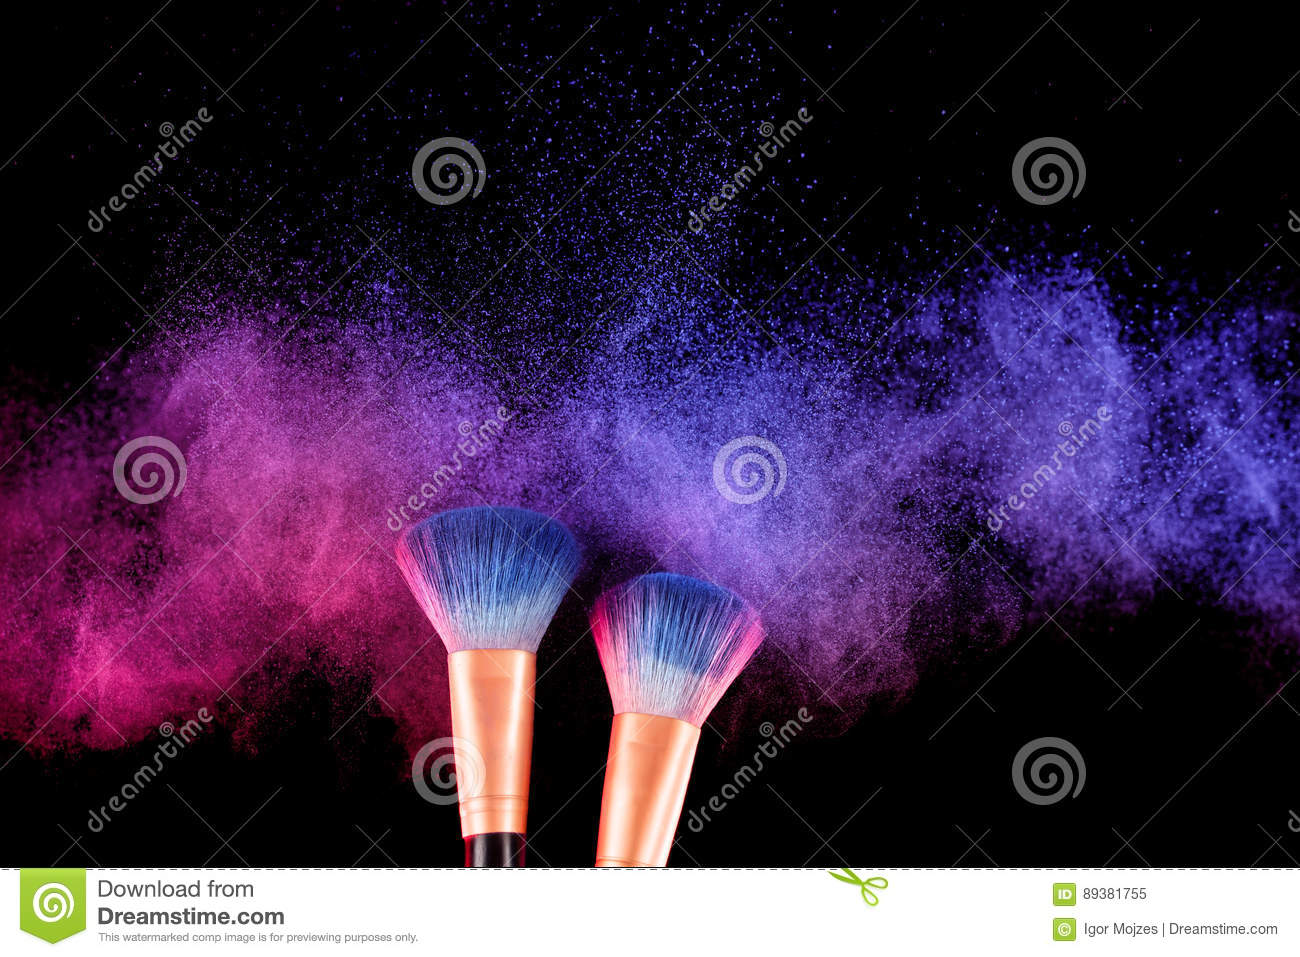 Cosmetics brush and explosion colorful makeup powder